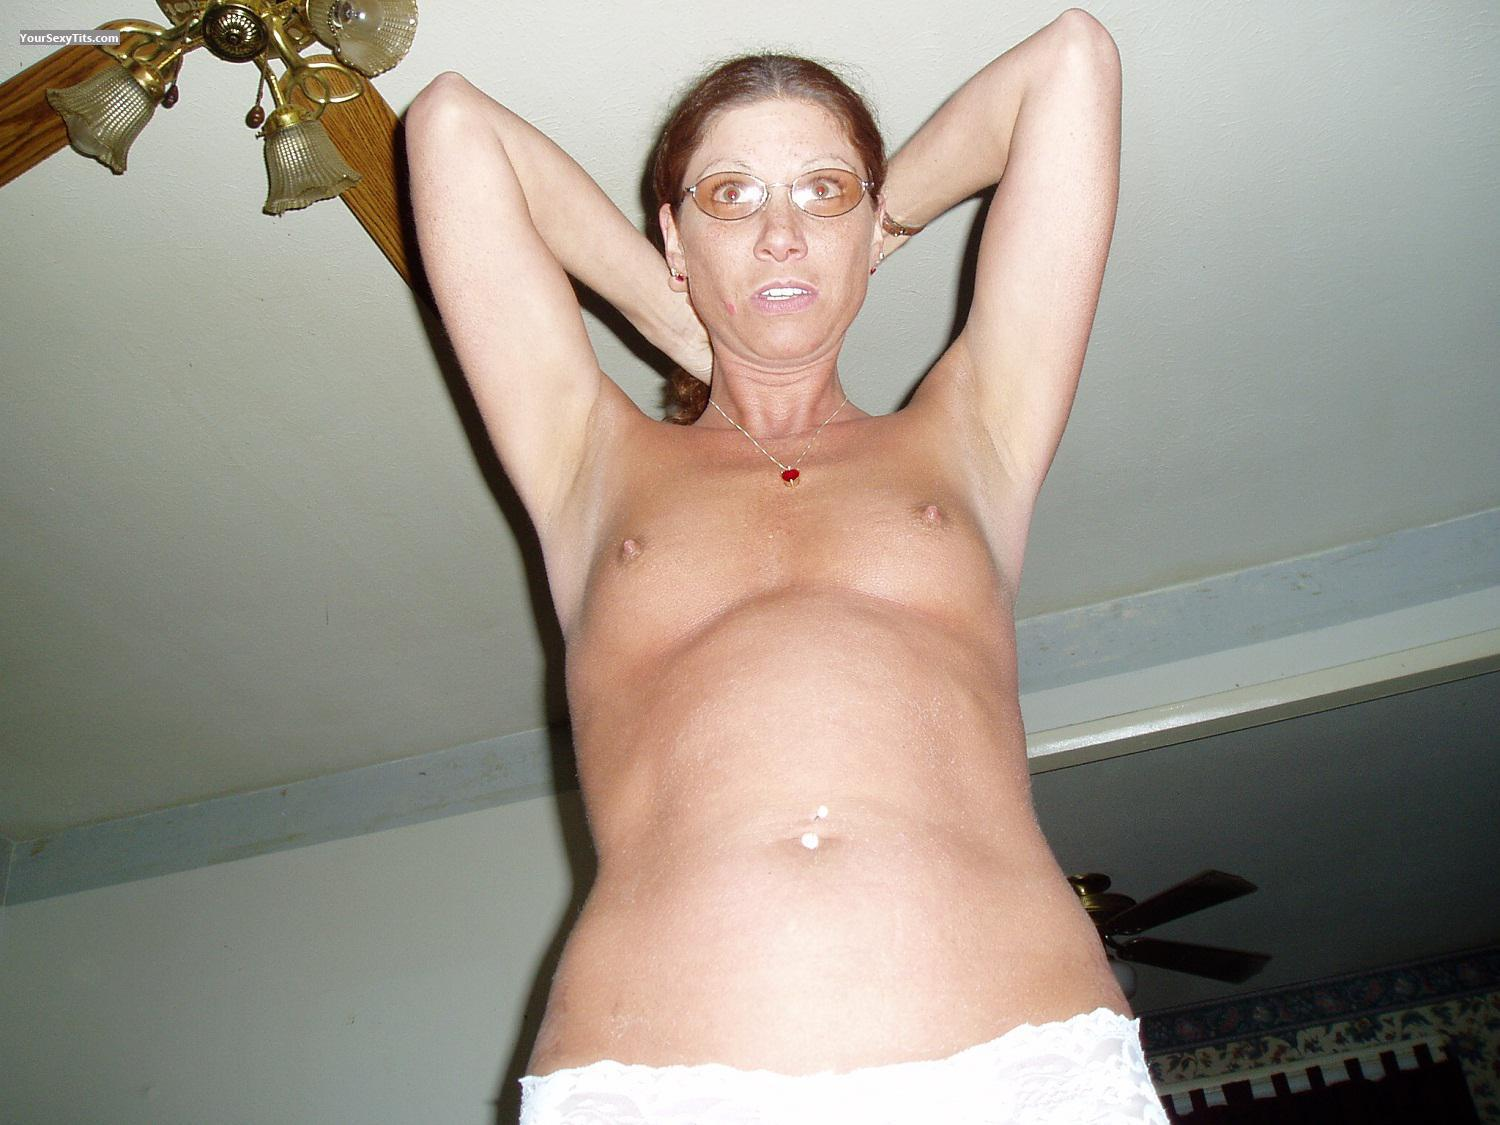 Tit Flash: Small Tits - Topless Dee from United States